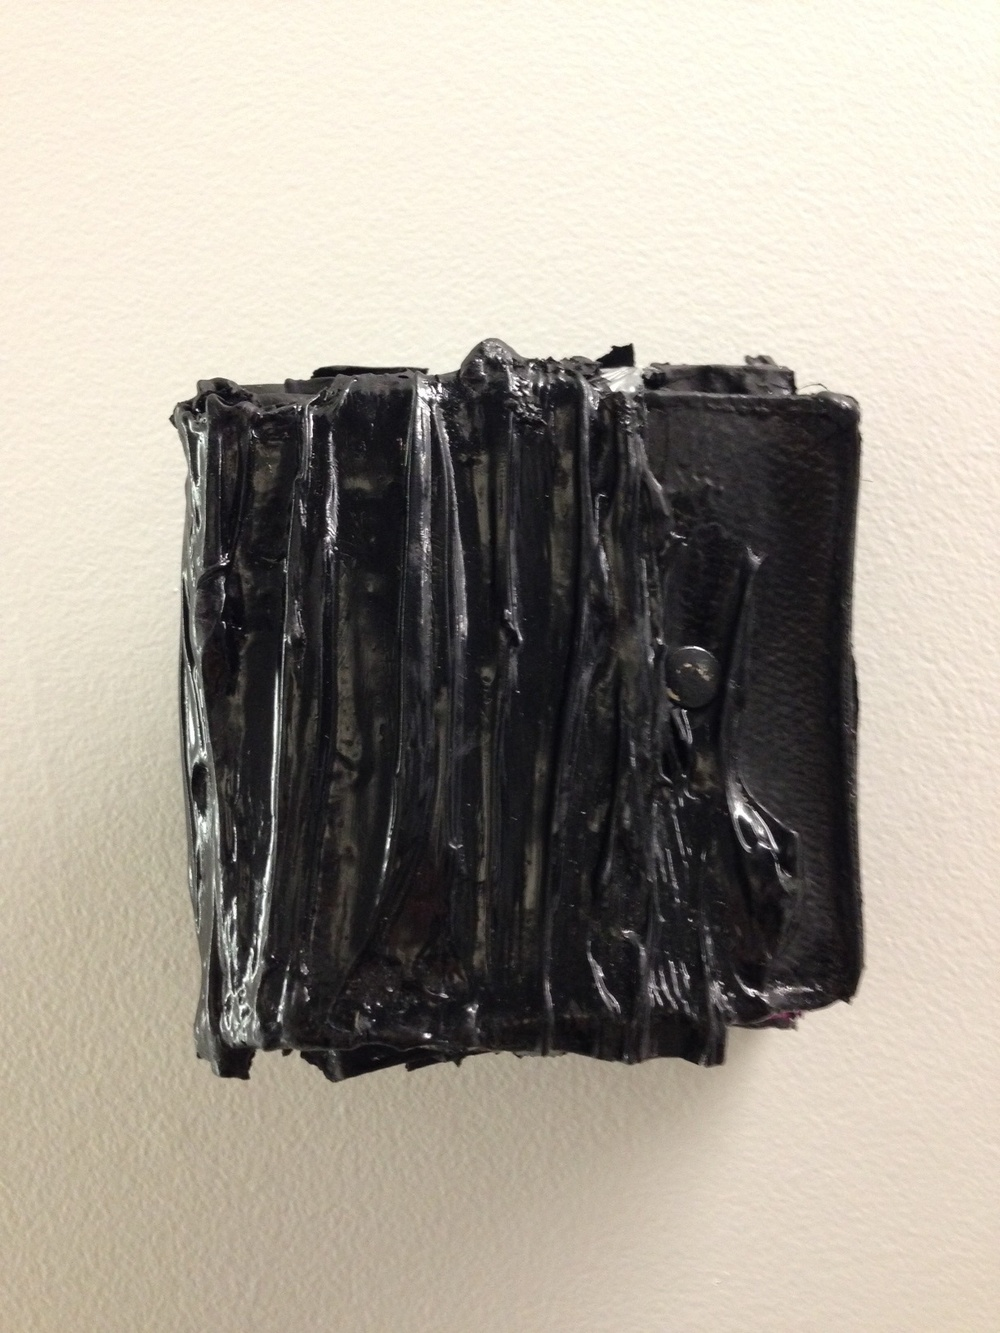 "Gabriel J. Shuldiner POST_FAIL postapocalypticblack, modified acrylic polymer emulsion, carbon black pigment, gesso, alkyd enamel, latex enamel, krink ink, high heat engine enamel, artist's own recycled Louis Vuitton canvas wallet, blackened steep roofing nail 4.5"" x 4.5"" x 3"" 2015"